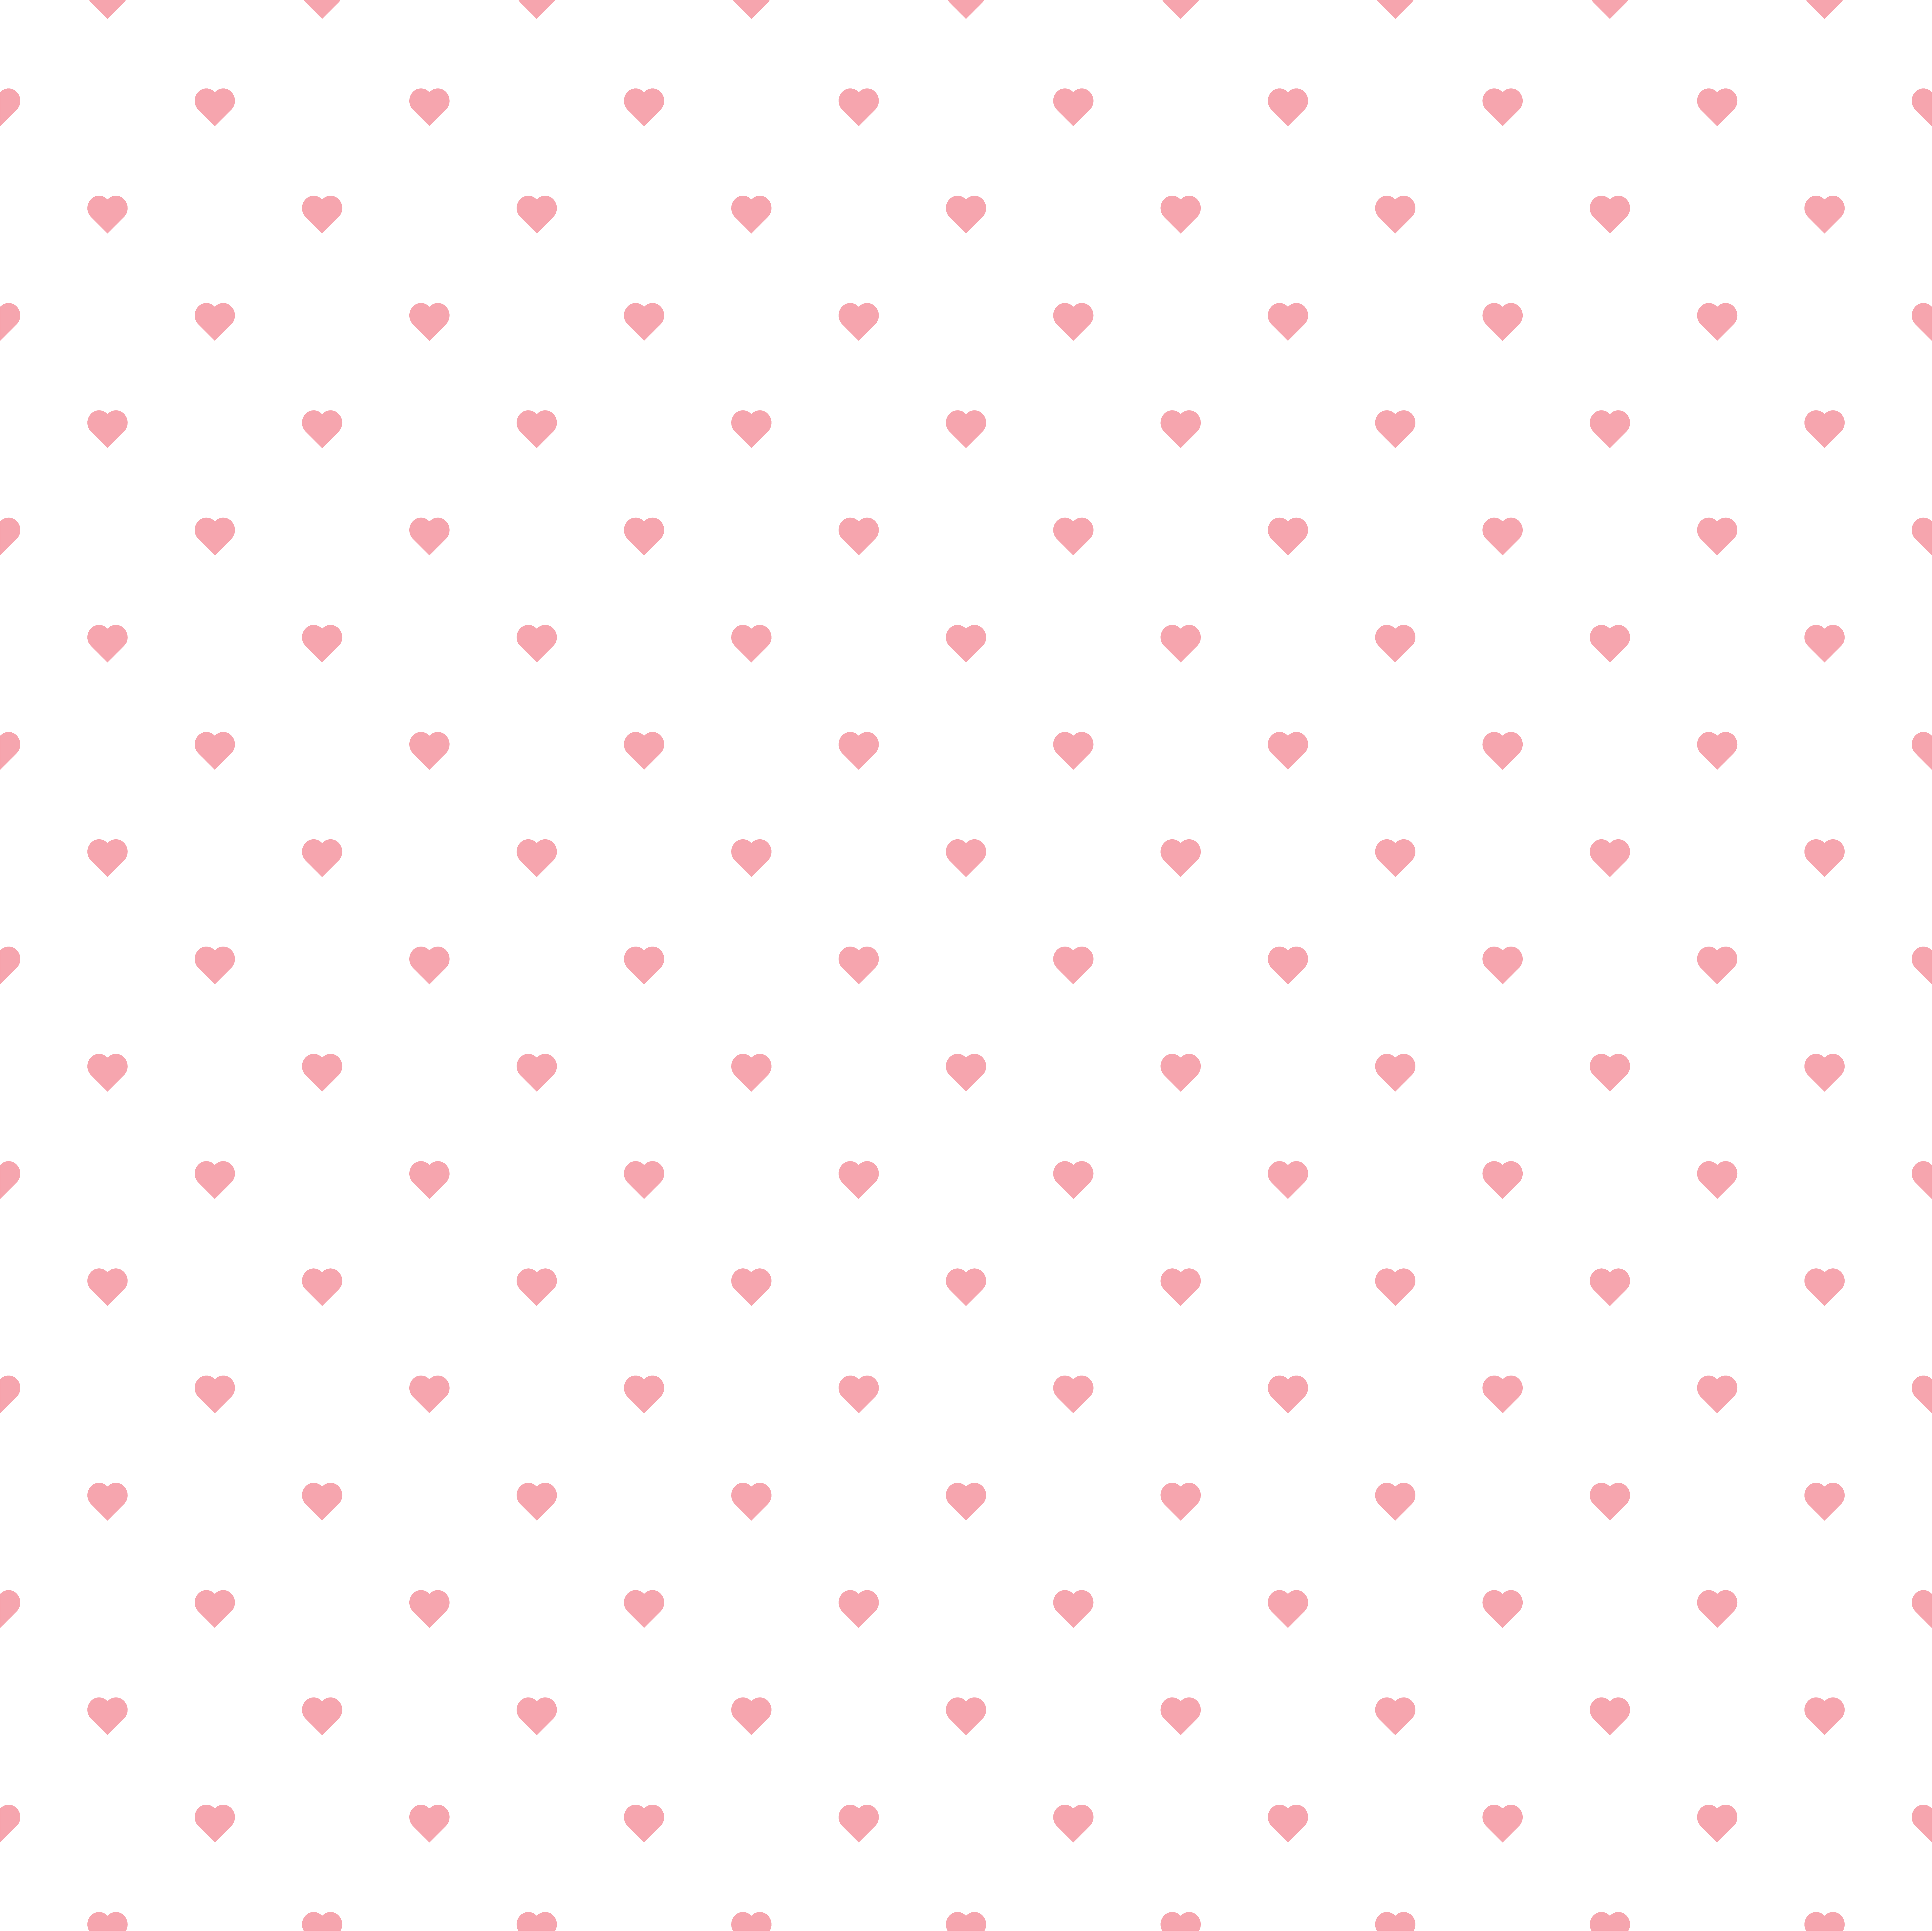 Background Pink Png - Pink Hearts for Background PNG Clip Art Image​ | Gallery ...